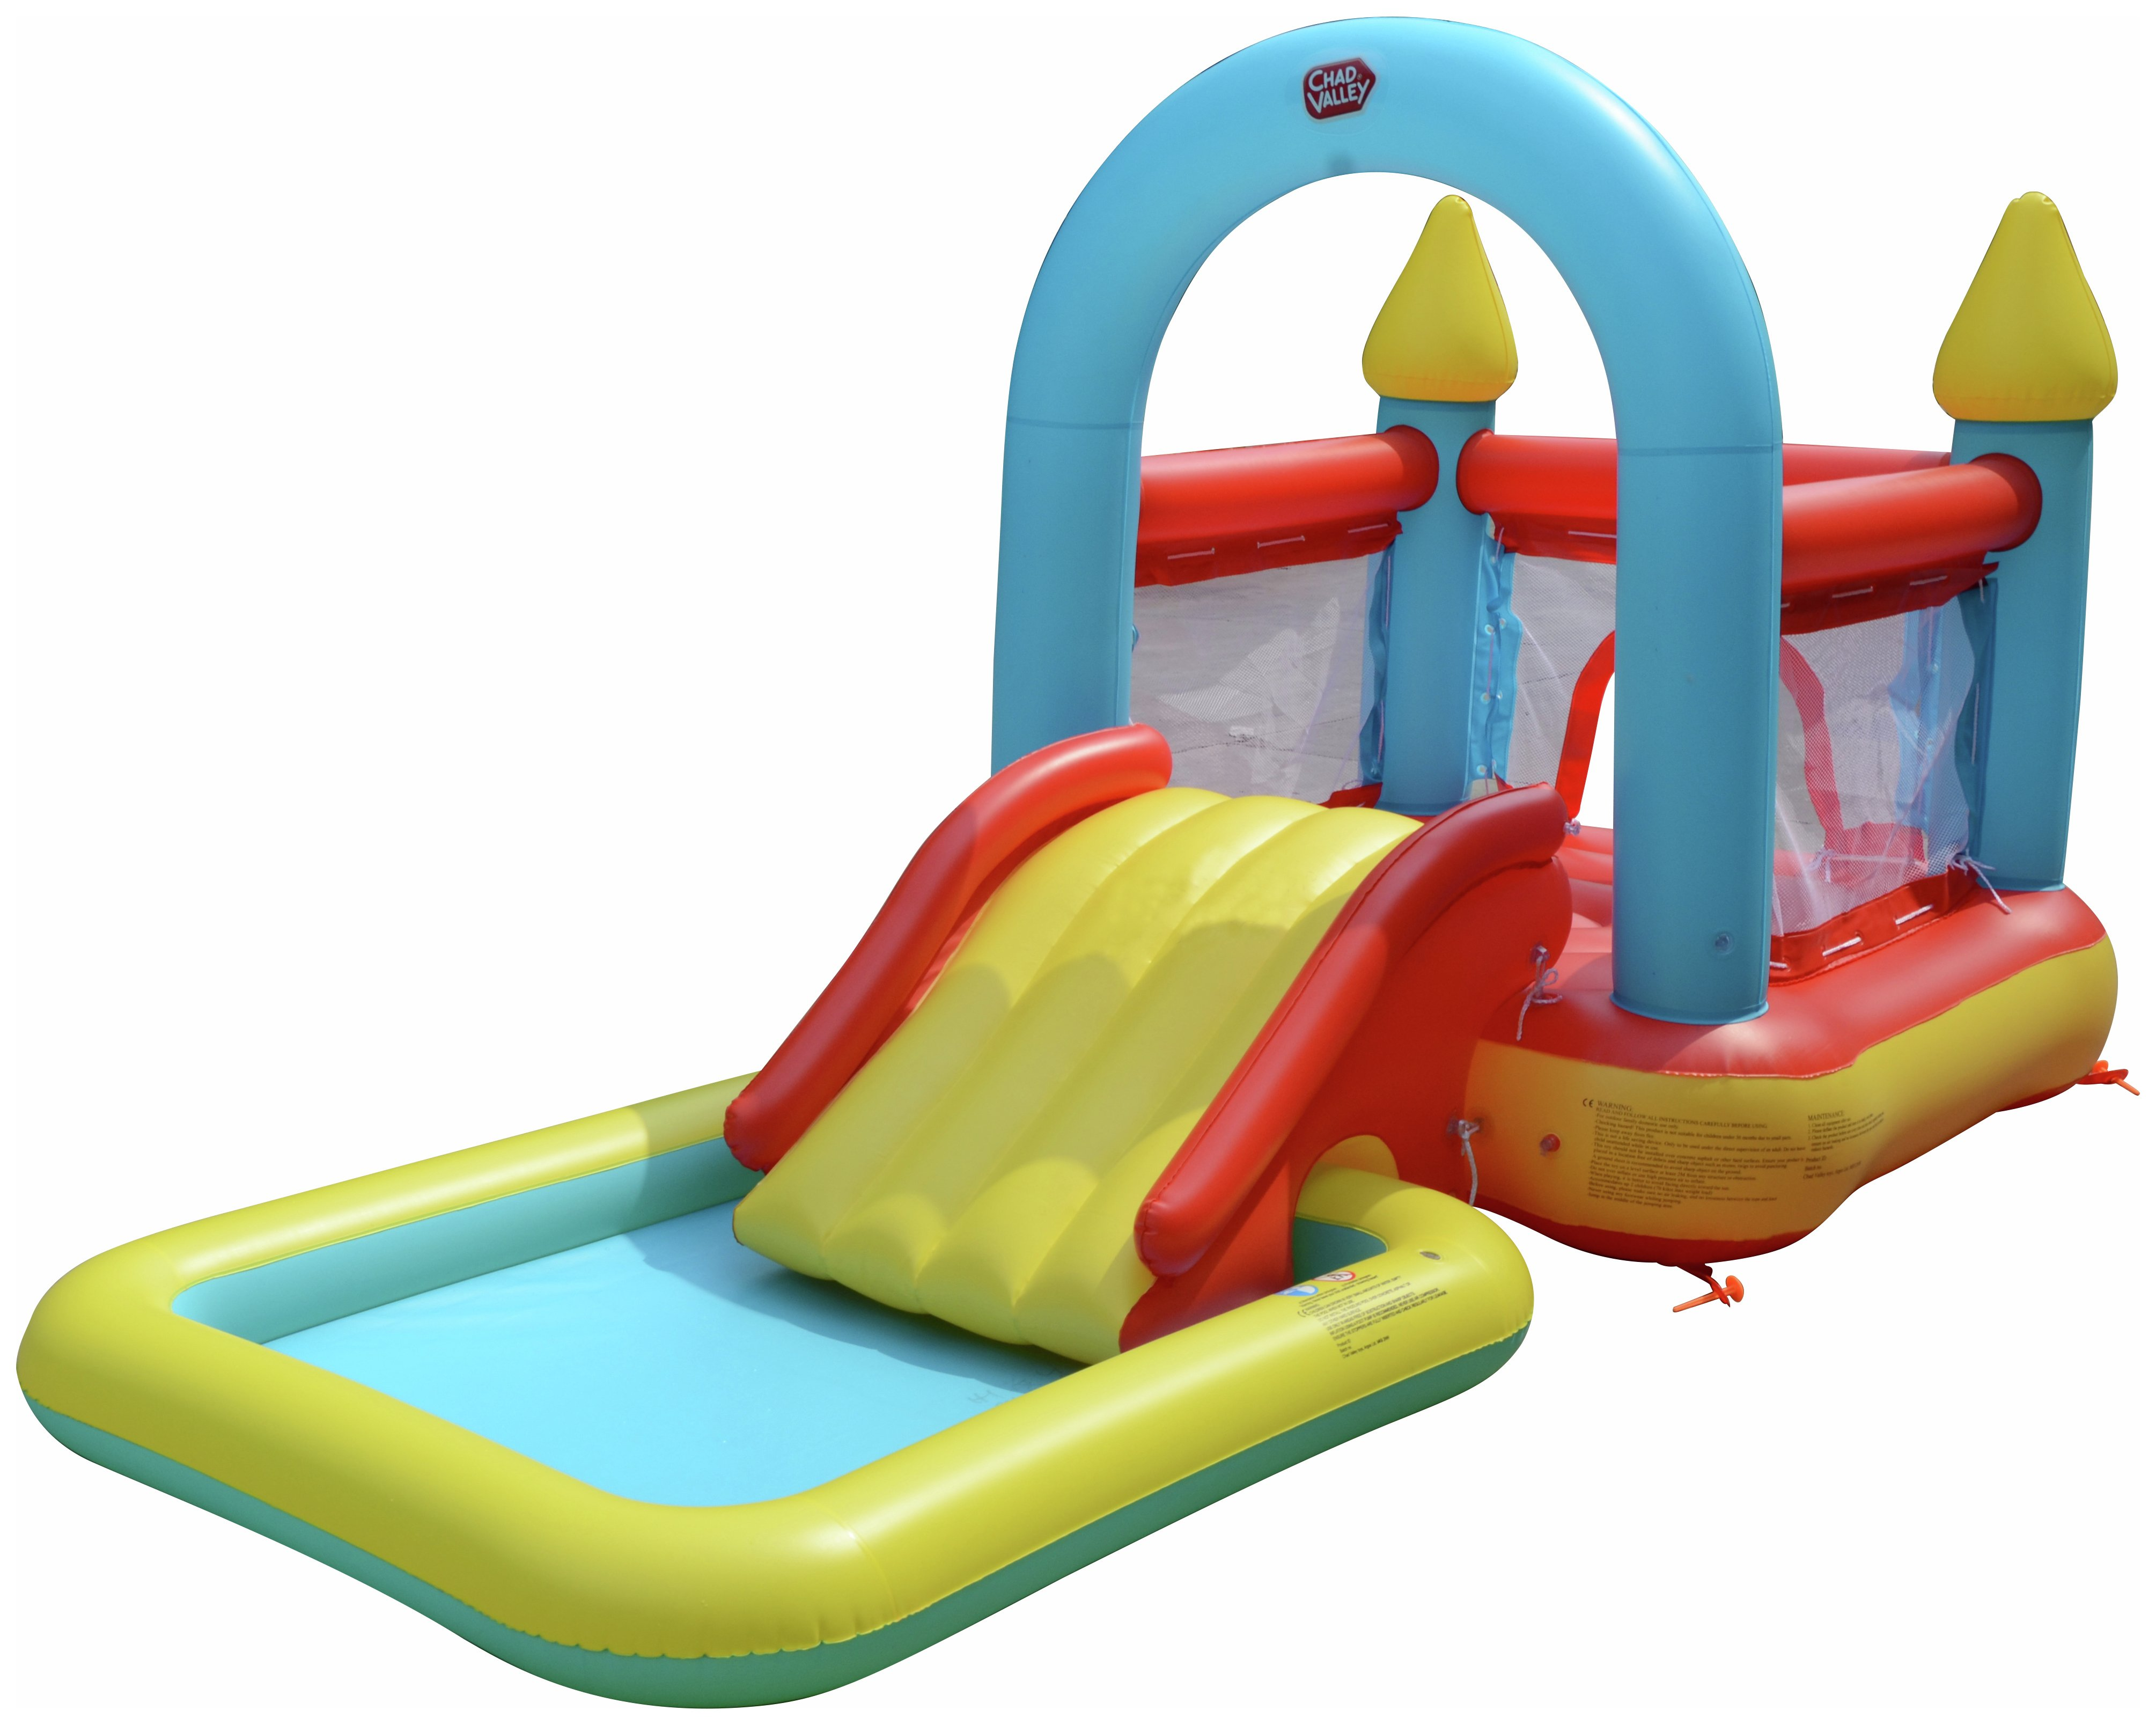 Castles Bouncy Sale Uk Deals For n0OPkw